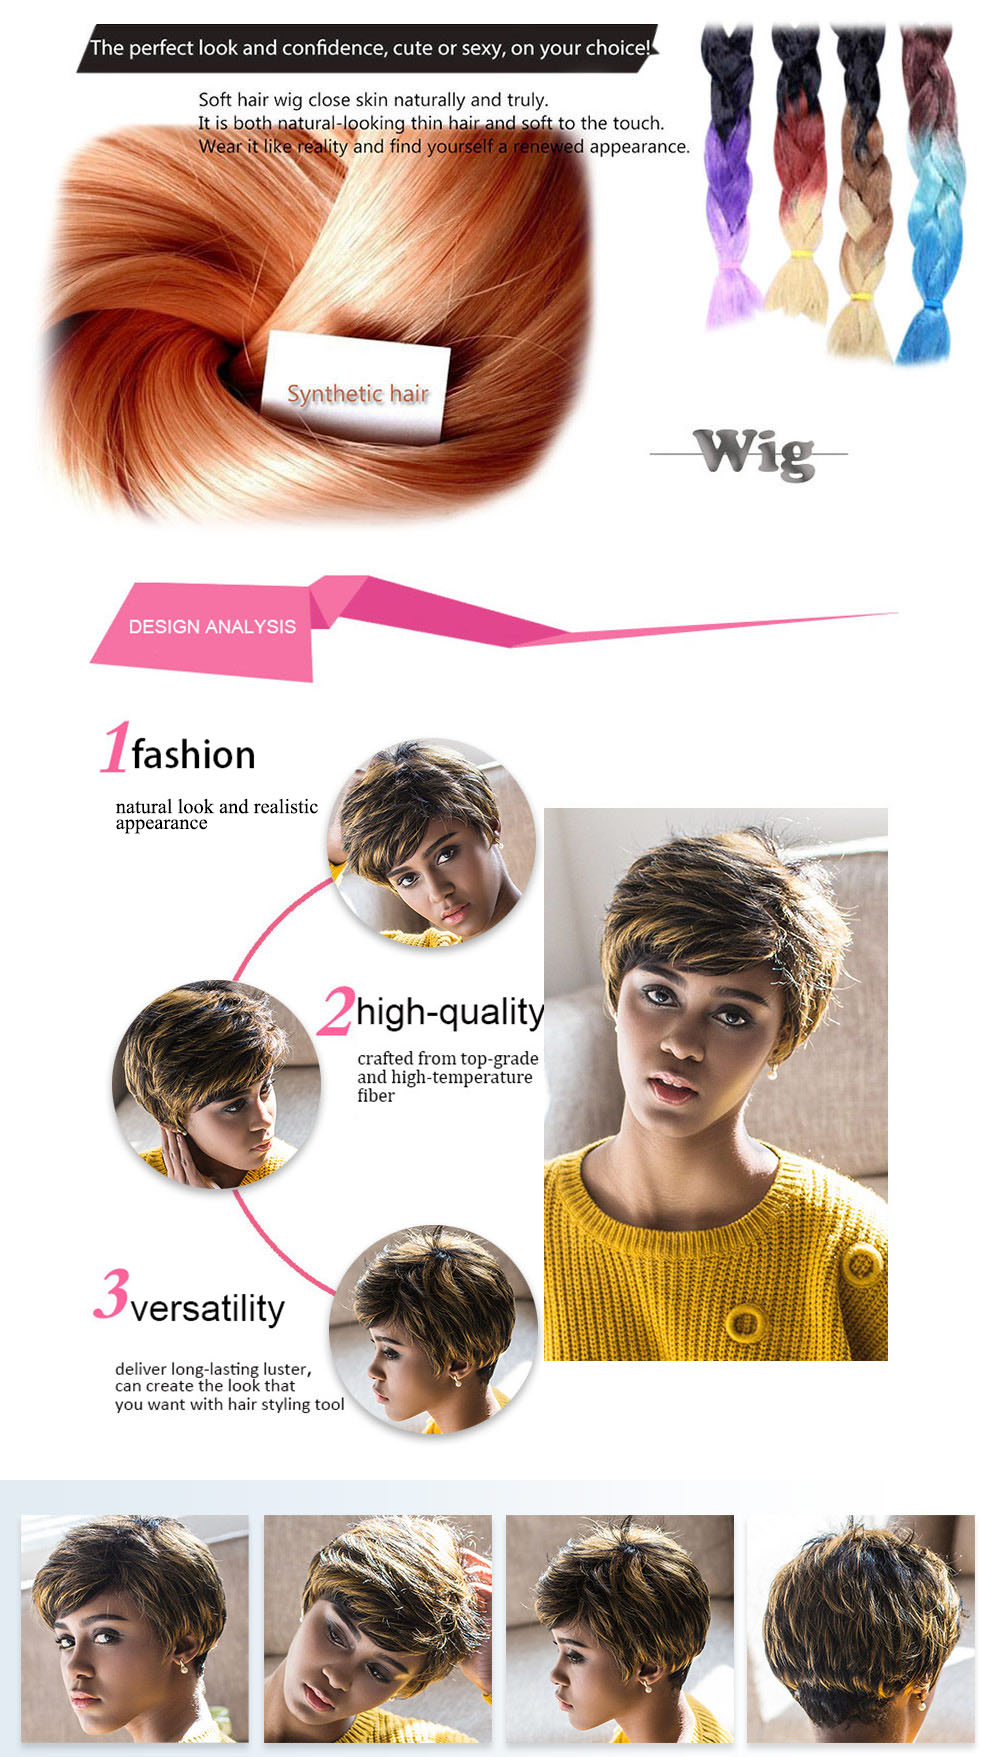 AISIHAIR Women Short Natural Straight Side Bangs Mixed Black Blonde Synthetic Wigs